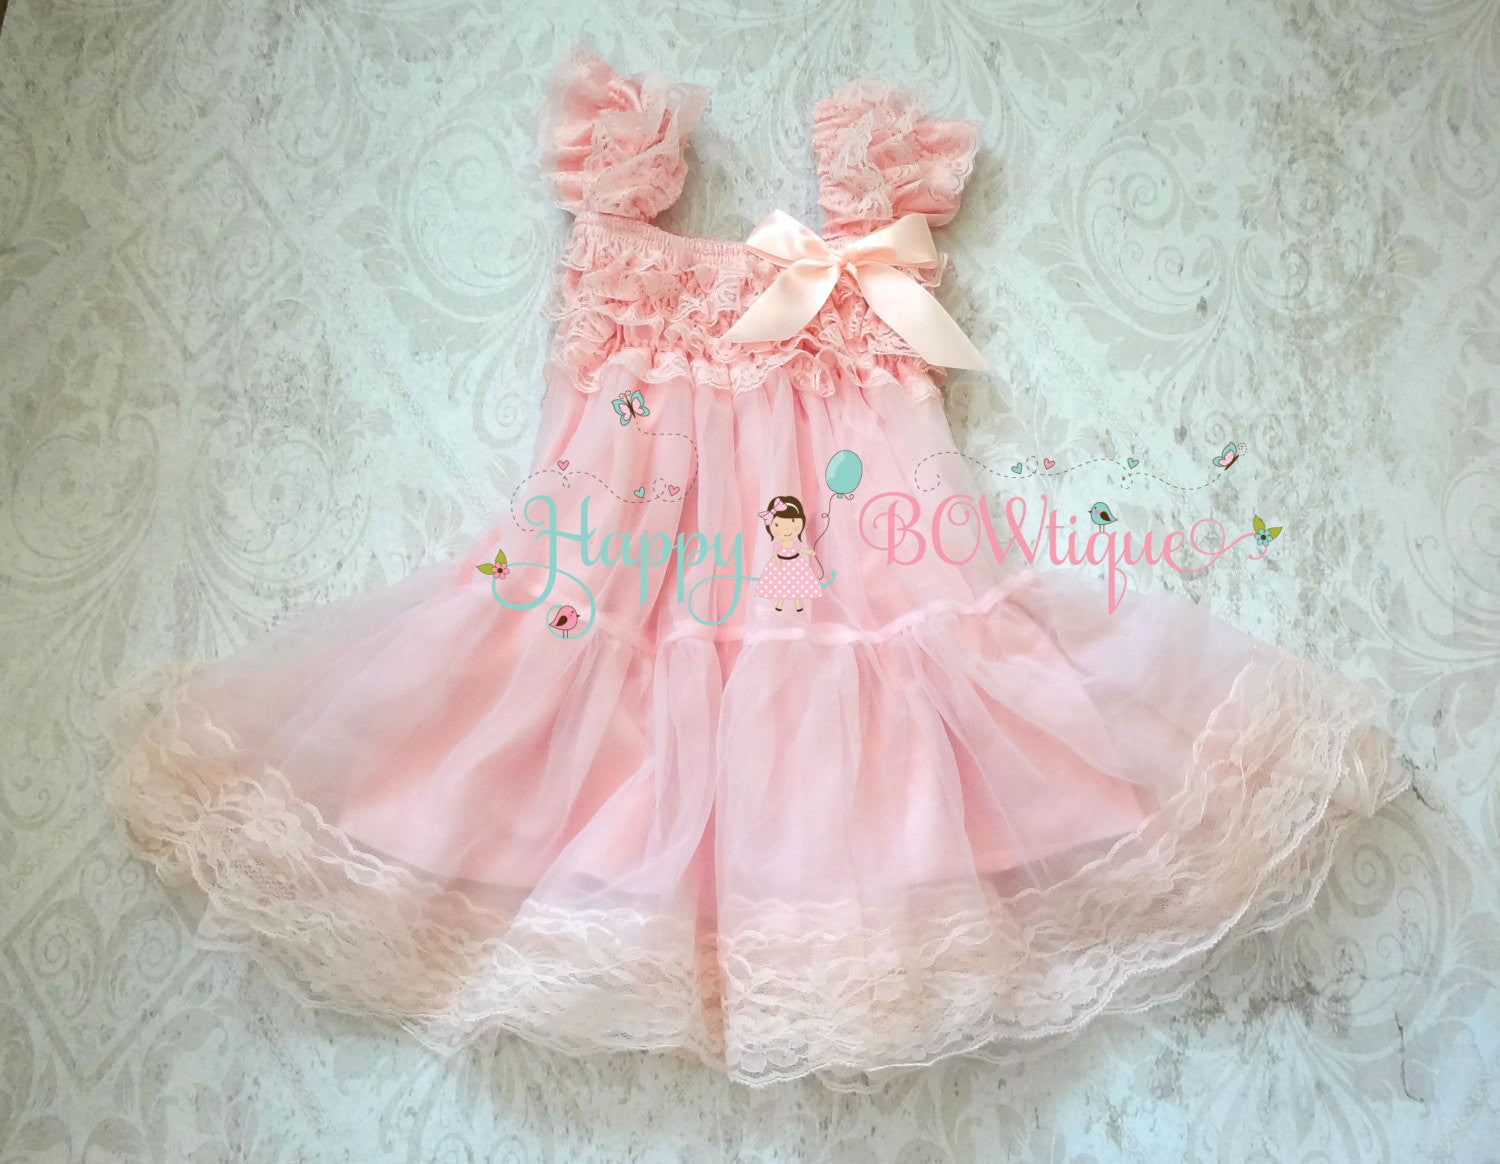 Babydoll Pink Chiffon Lace Dress set - Happy BOWtique - children's clothing, Baby Girl clothing